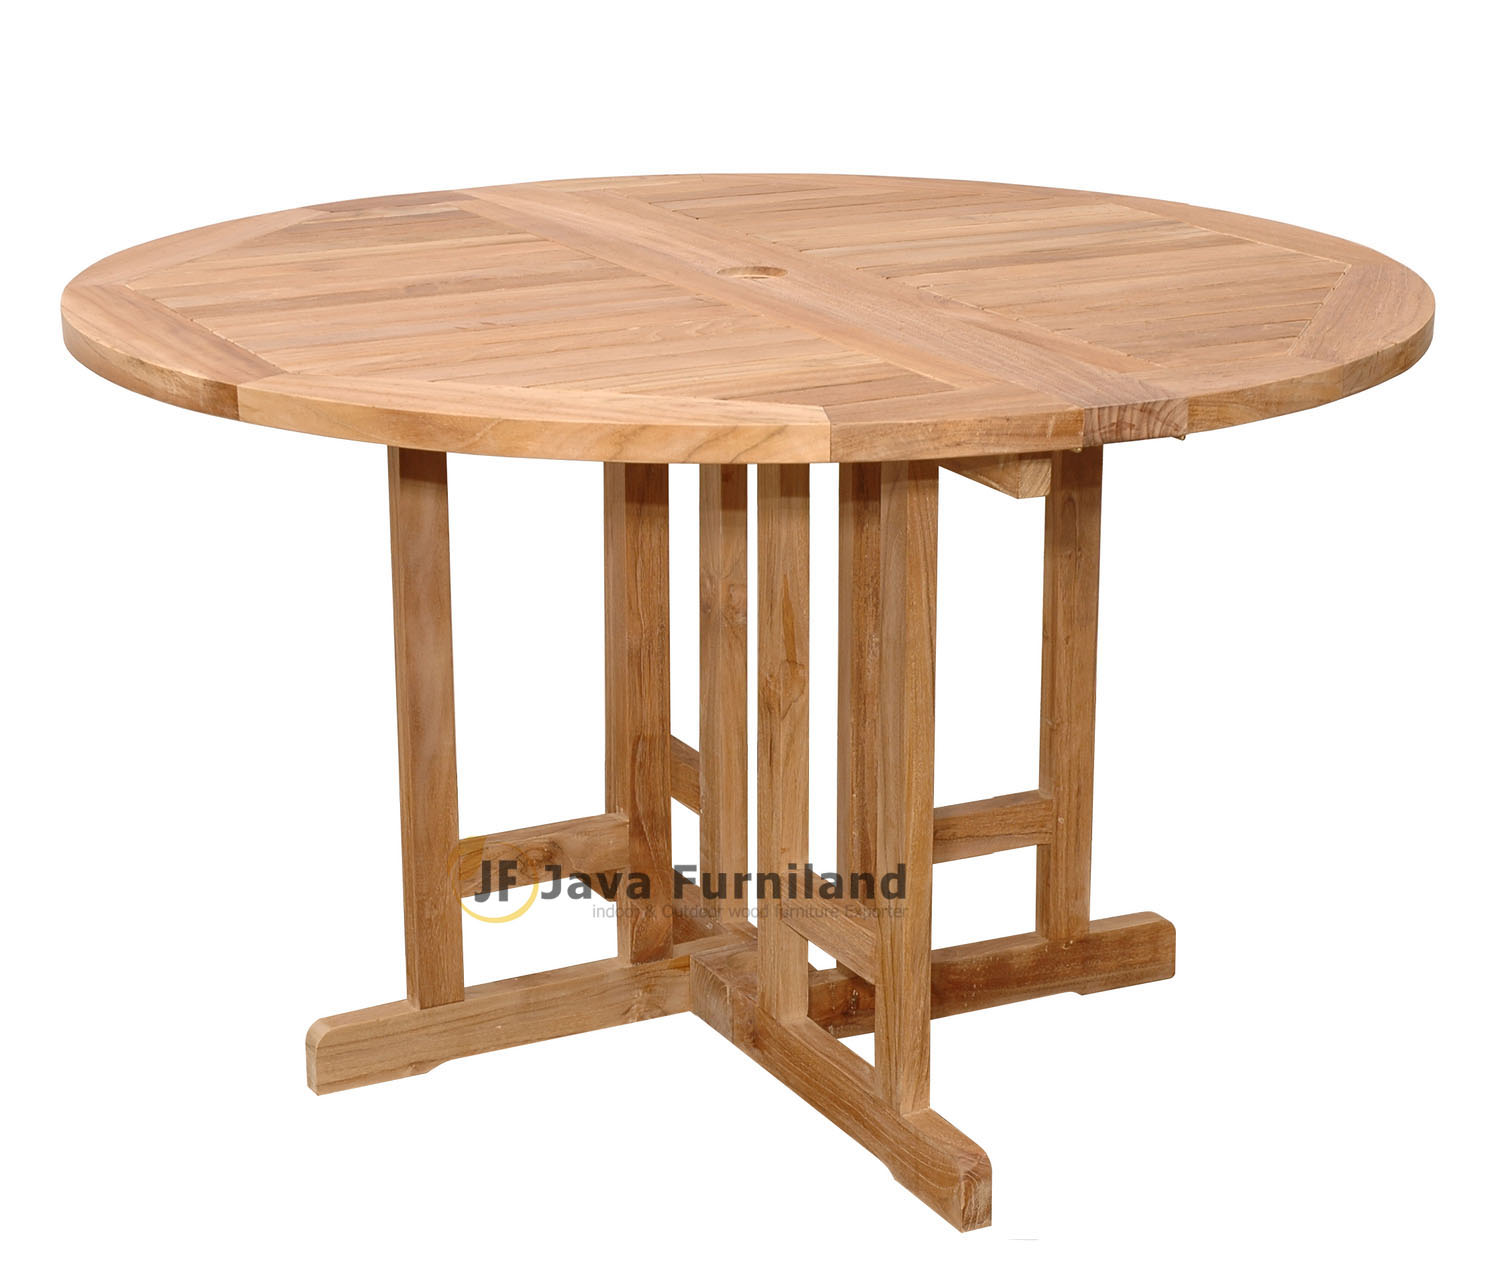 Teak garden furniture exporter round dining table from  : round20folding20butterfly20table20 20patio20furniture20 20teak20garden20 20supplier20Indonesia2012a from www.javafurniland.com size 1506 x 1264 jpeg 168kB